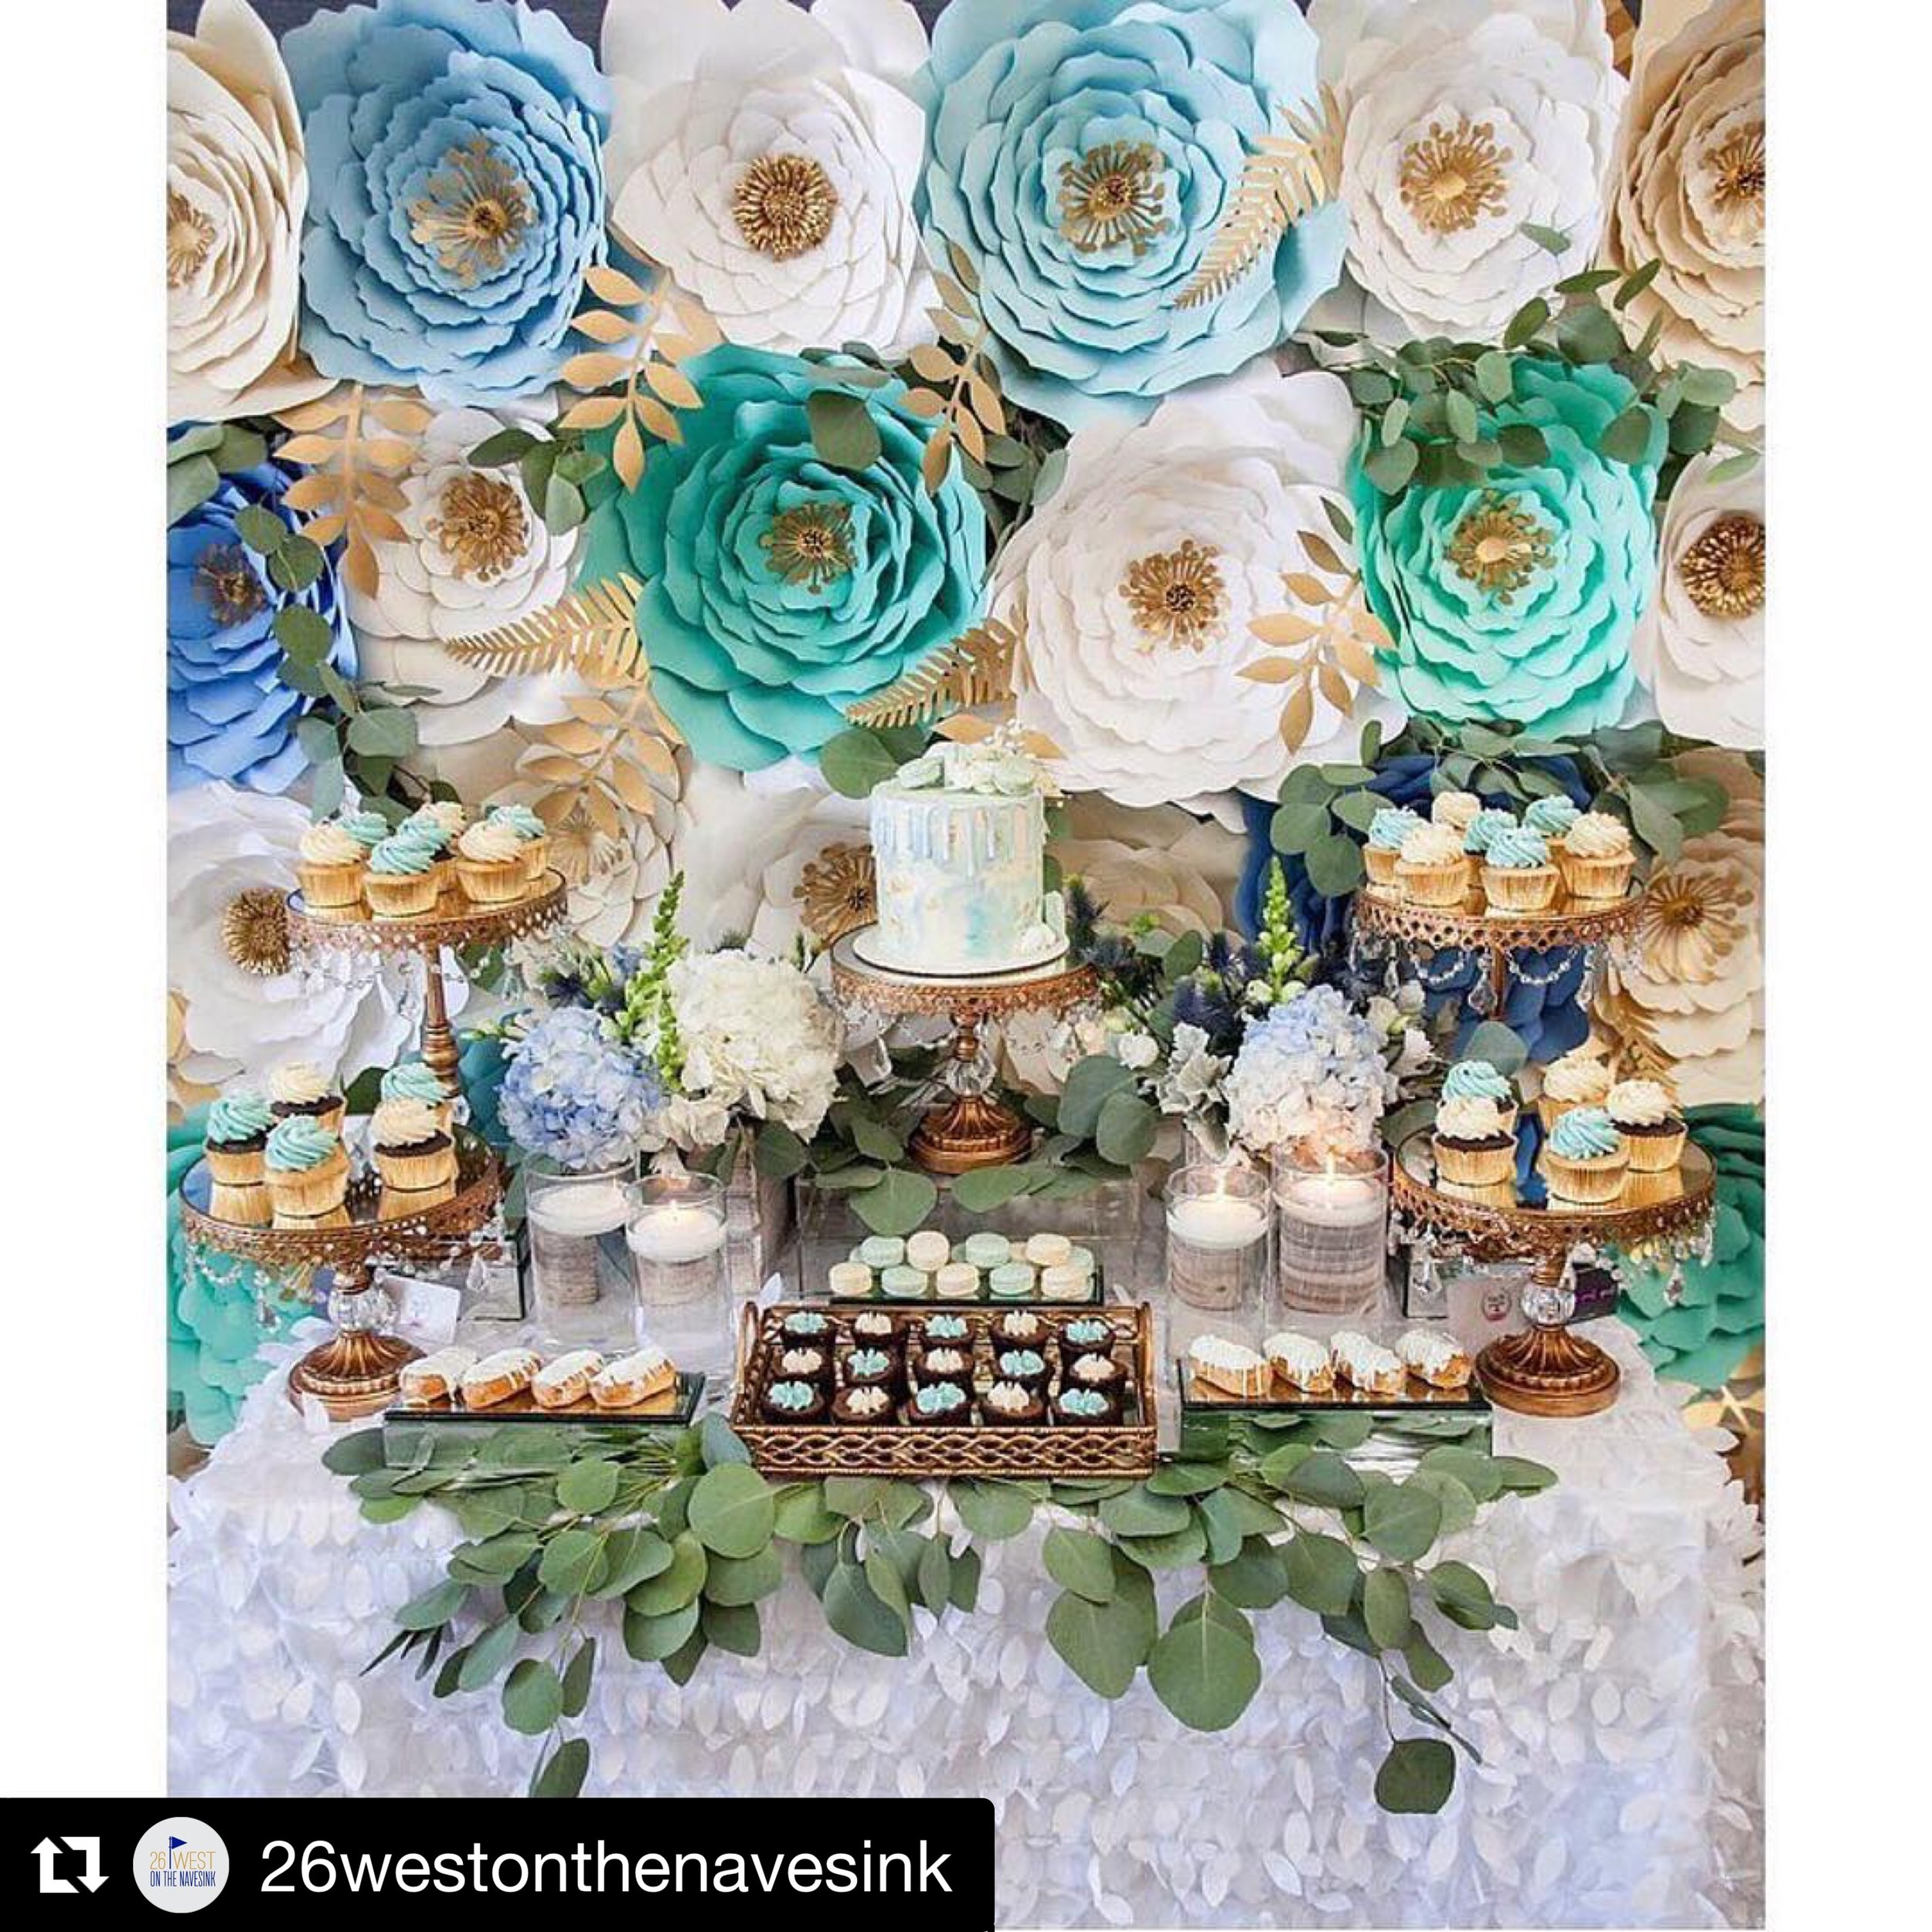 26westonthenavesink: Events at 26 West on the Navesink are so gorgeous thanks to @cristinkellydesign ・・・ Such gorgeous colors! ✨🌿 #ladiesluncheon #paperflowerwall #sweetlife #cristinkellydesign